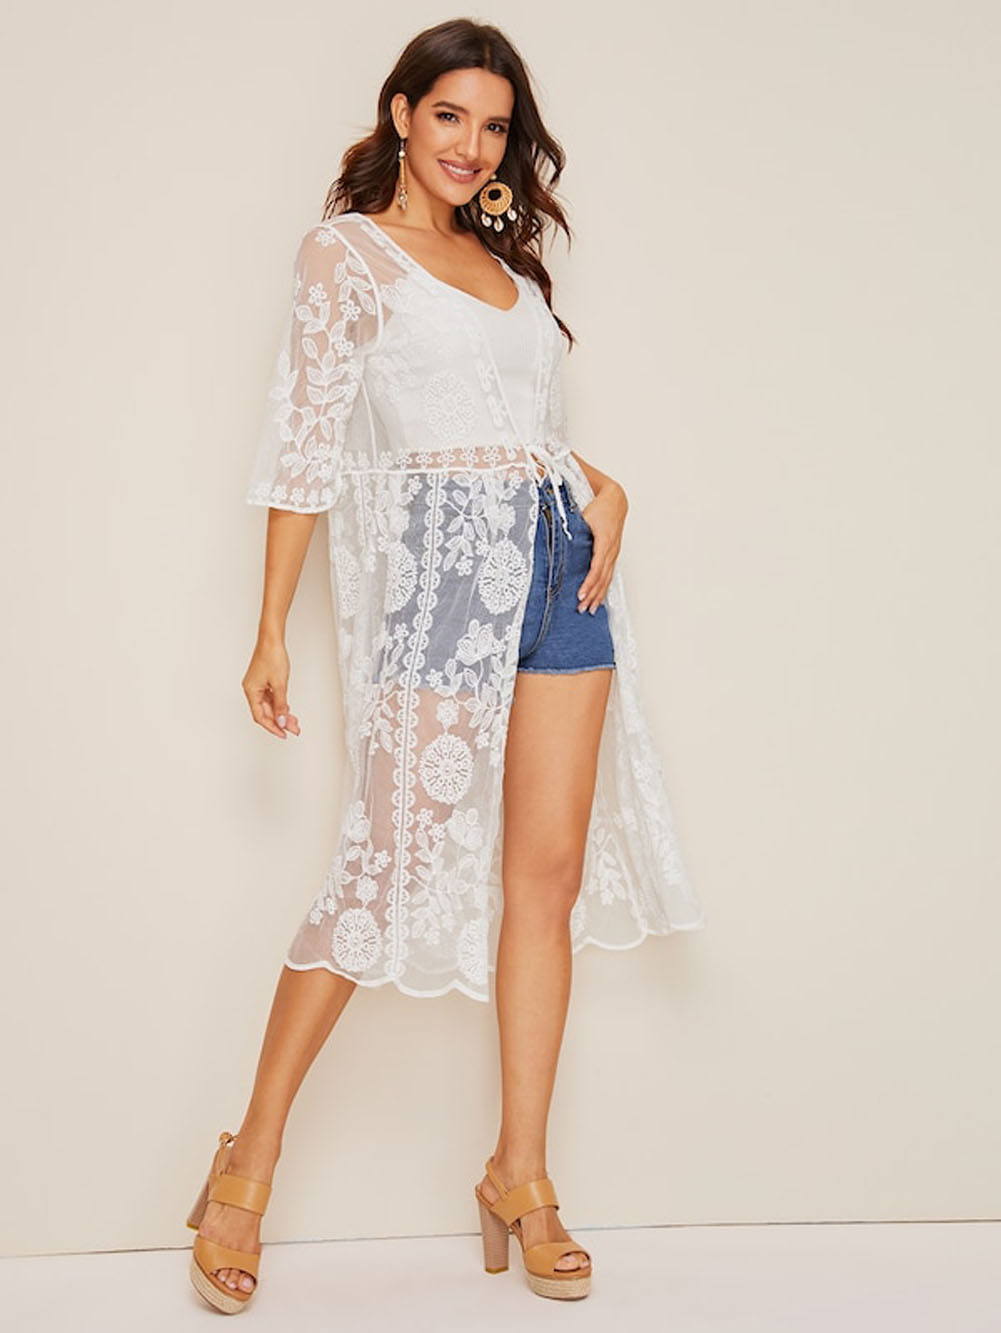 Women Summer Beach Cover Up Floral Print Lace Summer Ladies Loose Shawl New Cardigan Tops Blouse